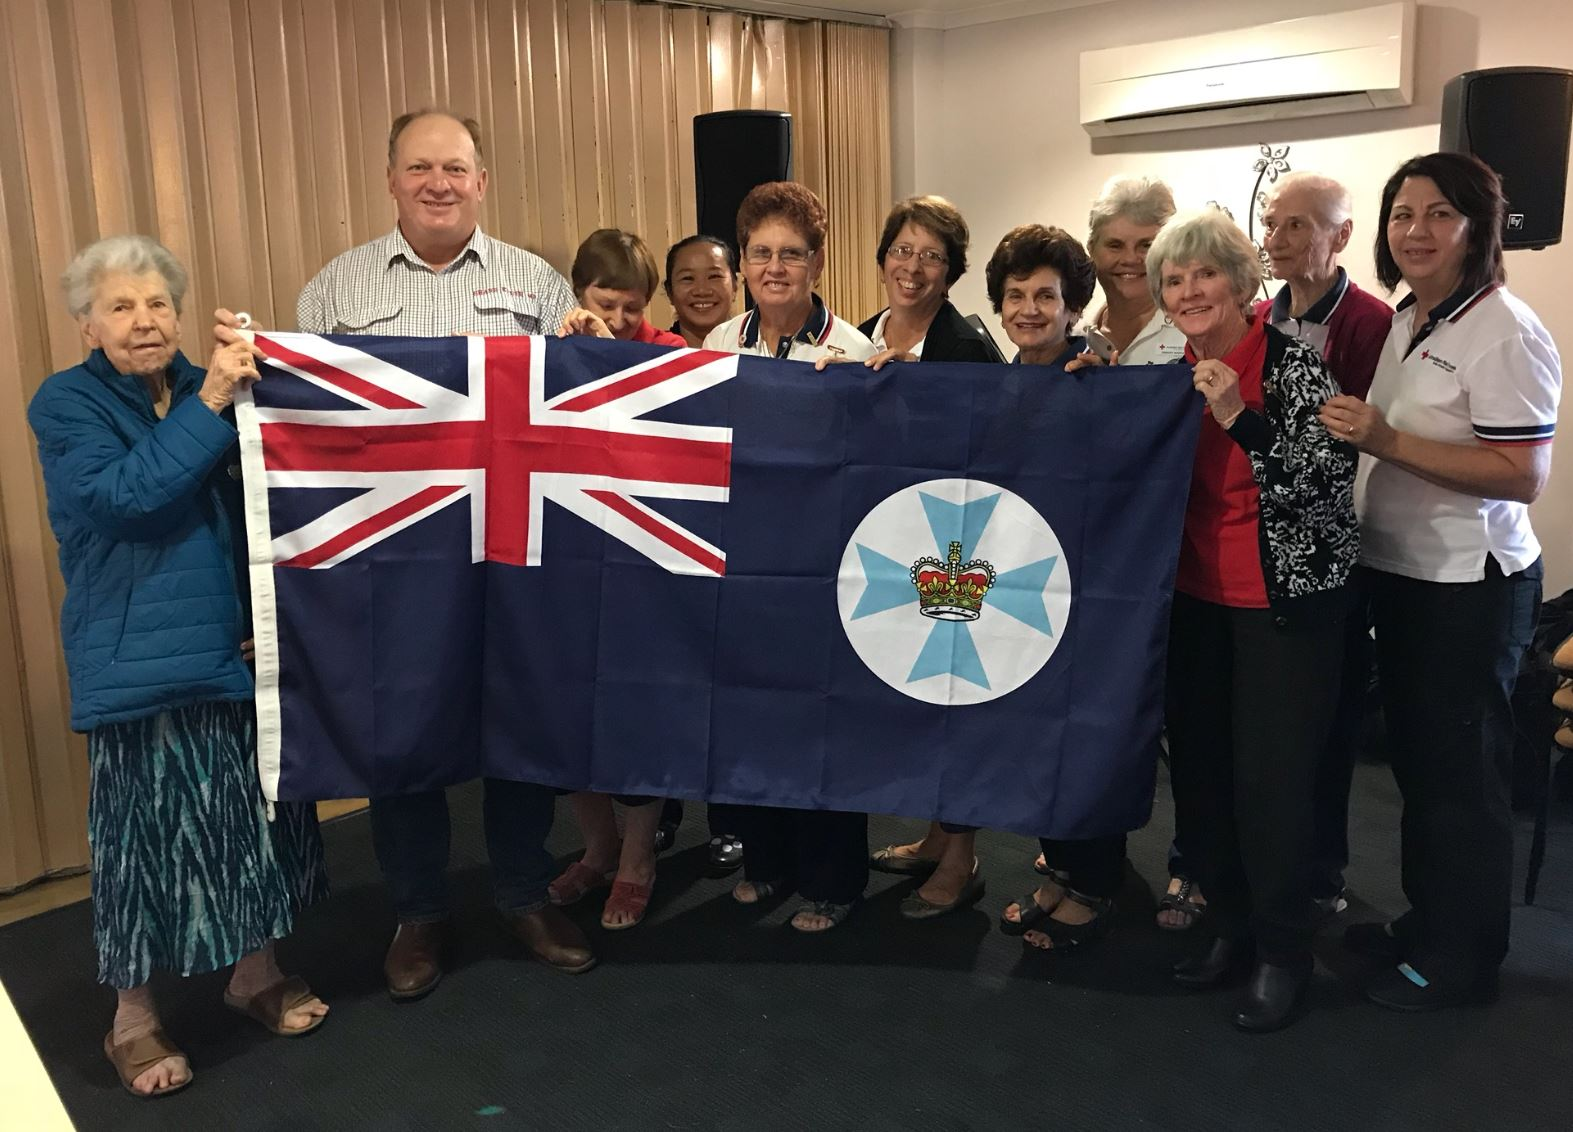 Shane Knuth handing over the State Flag to the Kurrimine / Silkwood Red Cross Branch for Queensland Day. He also enjoyed a few games of Hoy while there!